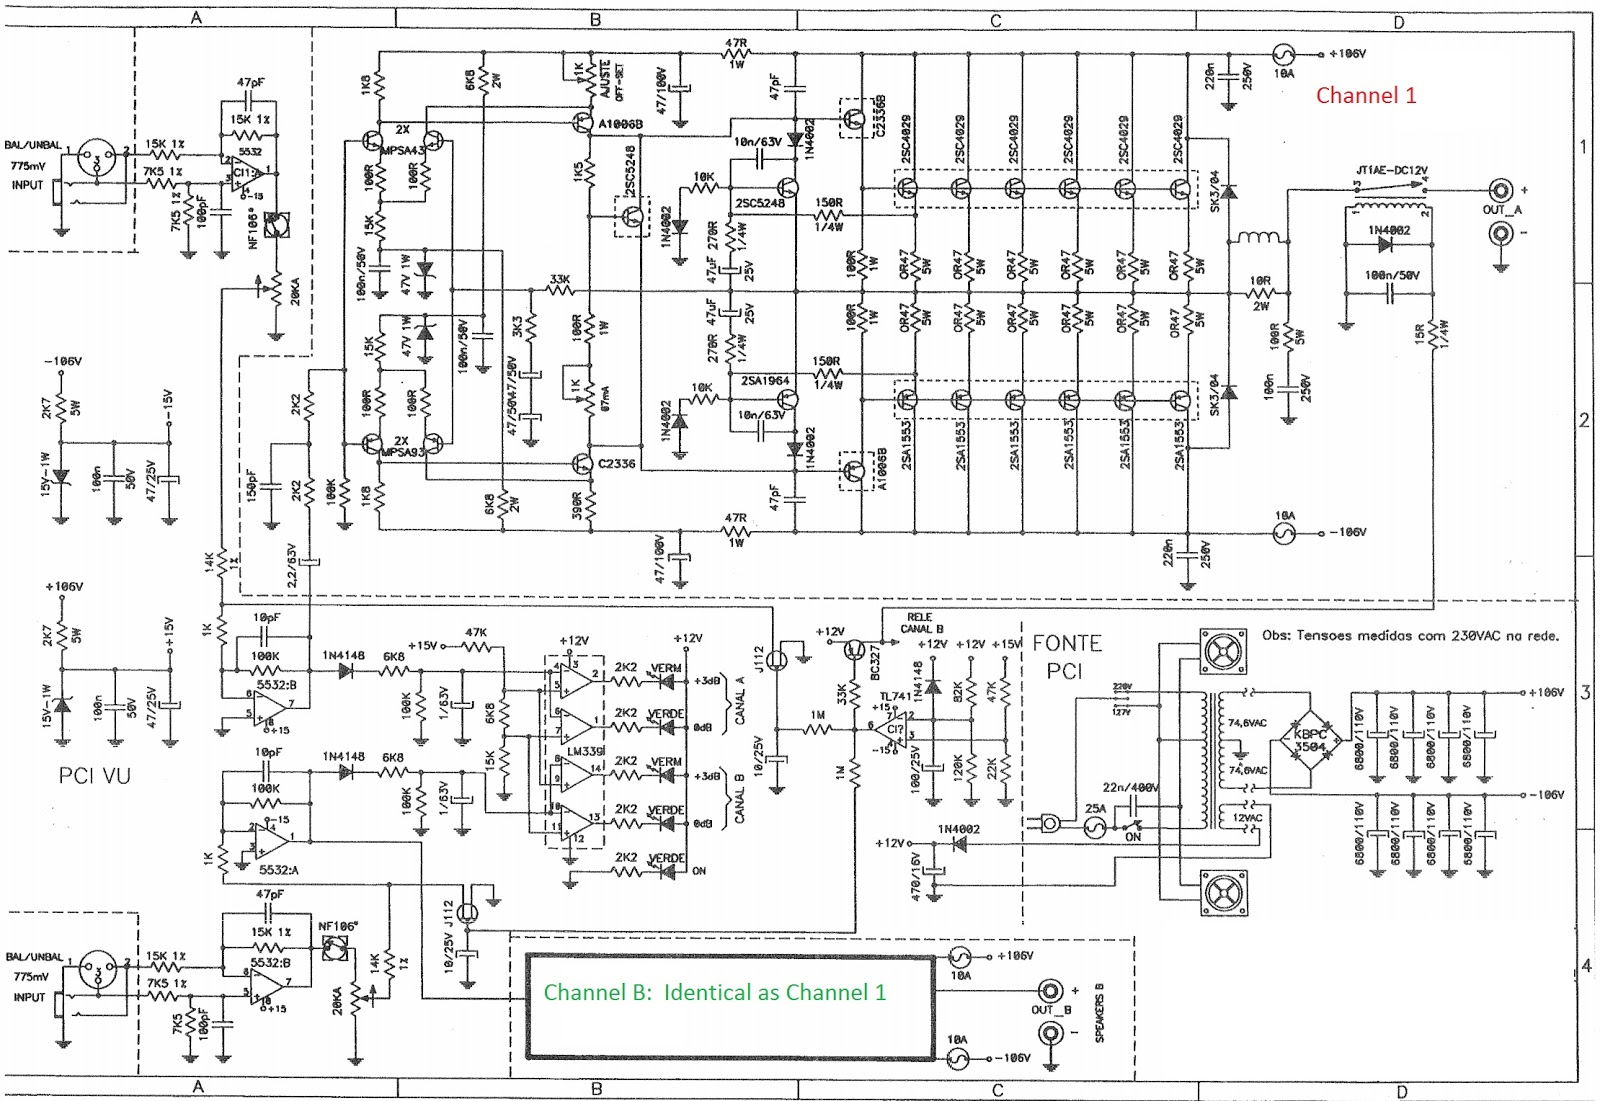 B Aksa 55 01 as well Lm7805 Fixed 5v Voltage Regulator further TDA1519 in addition TA7240AP likewise 2n7000. on power schematic